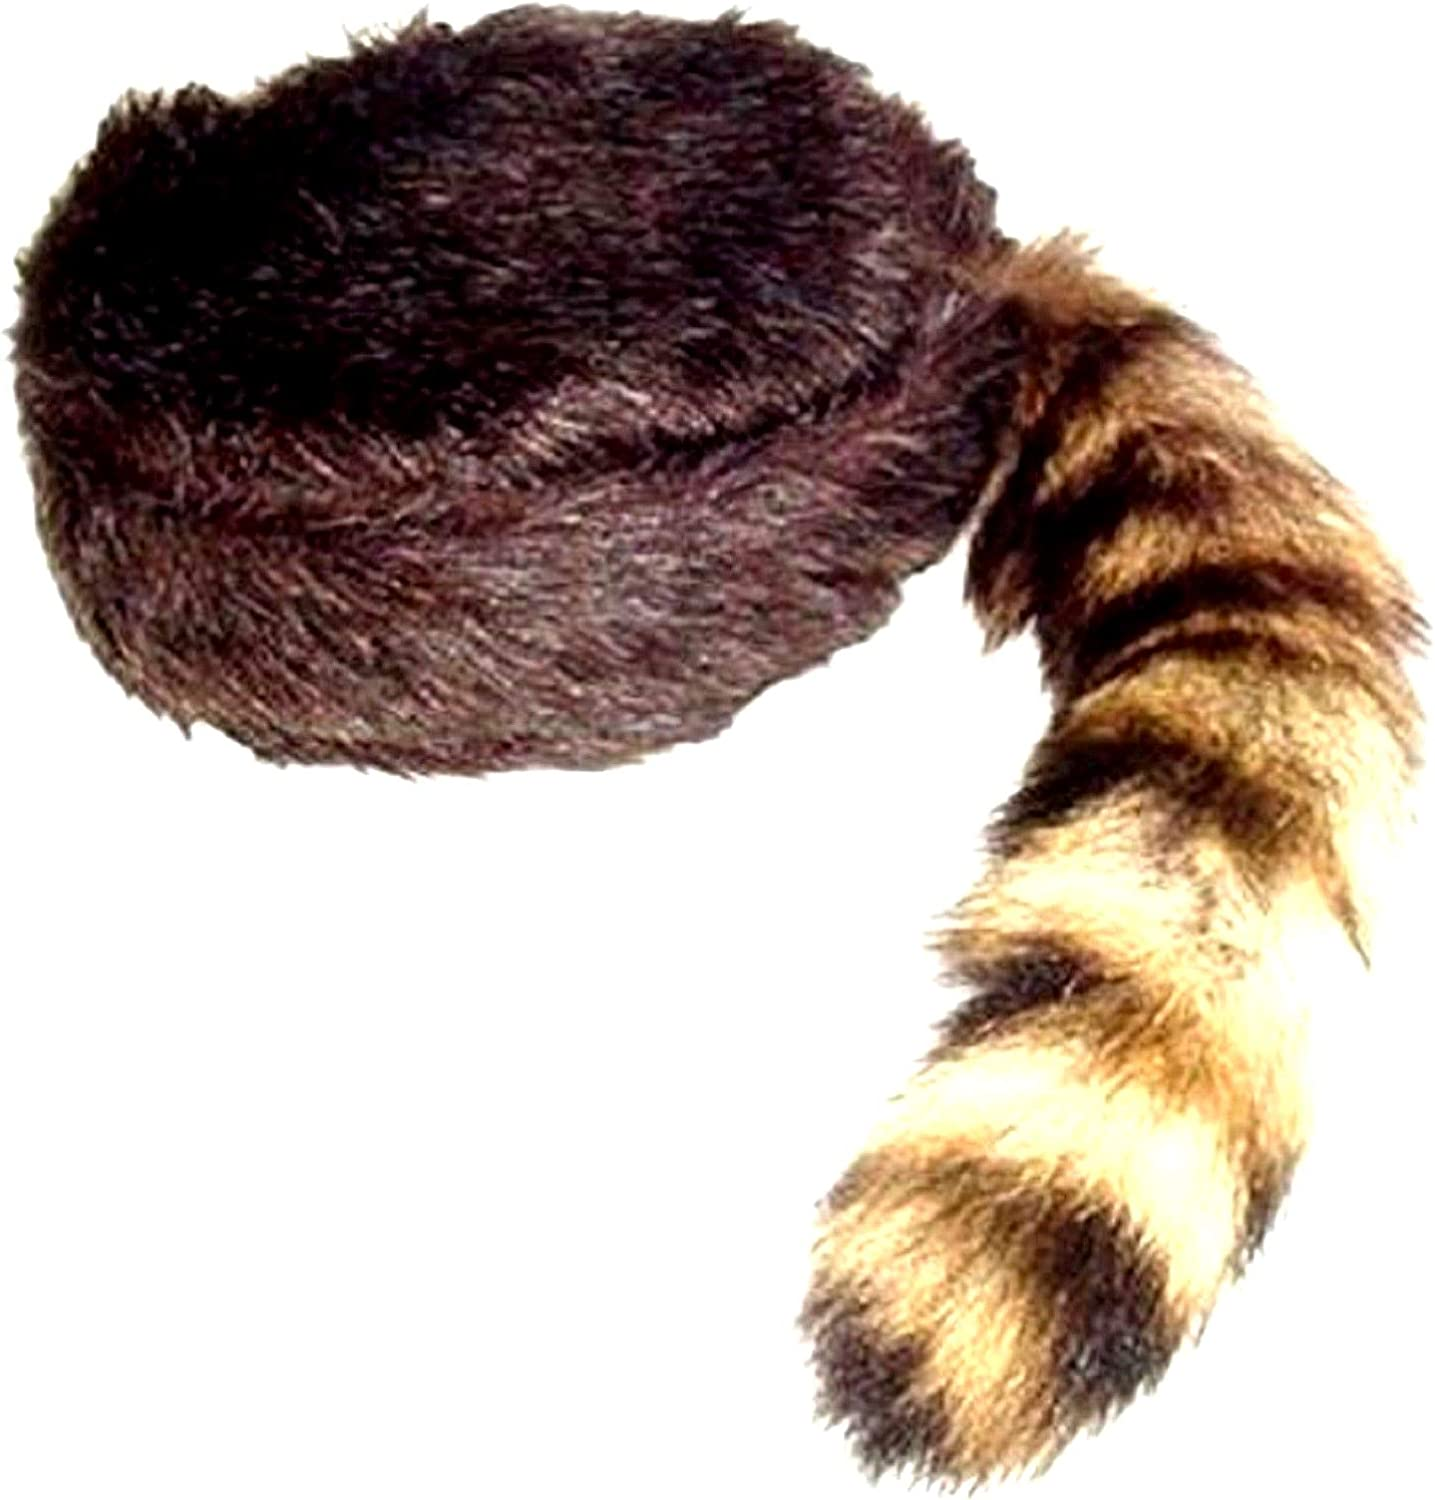 Amazon.com: Daniel Boone Coonskin Cap, Racoon Tail, SIZE SMALL: Home &  Kitchen